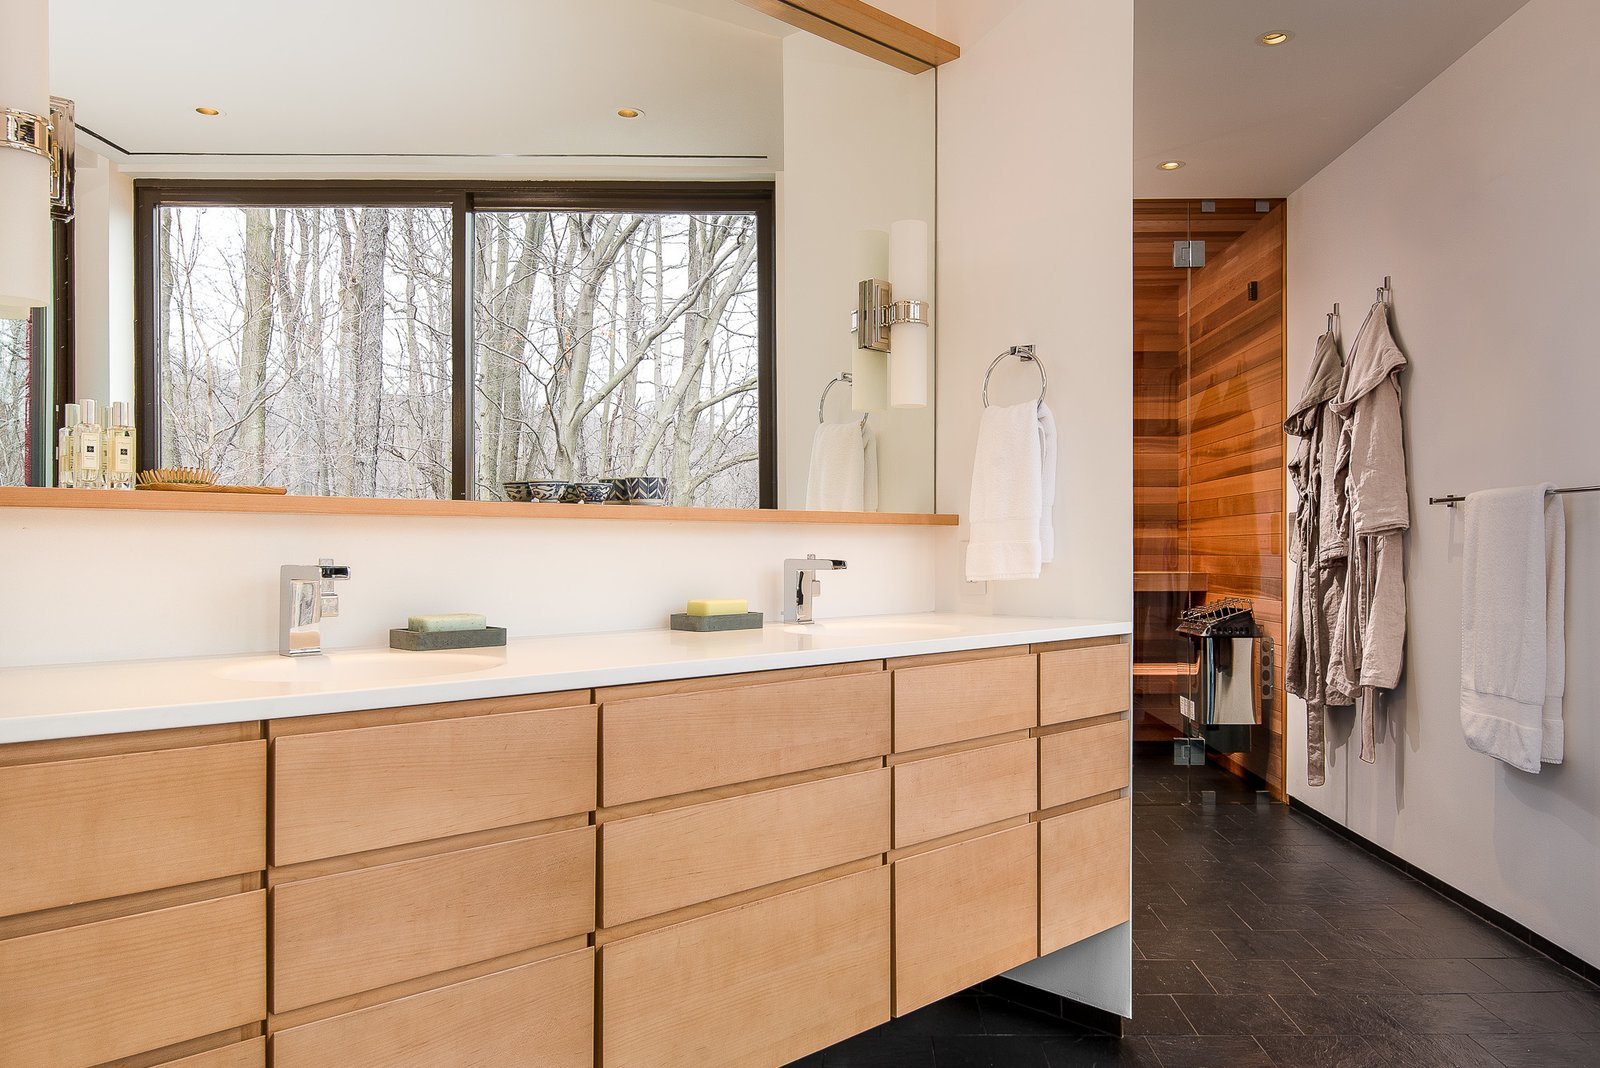 Bath Room, Quartzite Counter, Slate Floor, and Ceiling Lighting Master bath  House in the Woods by Kim Smith